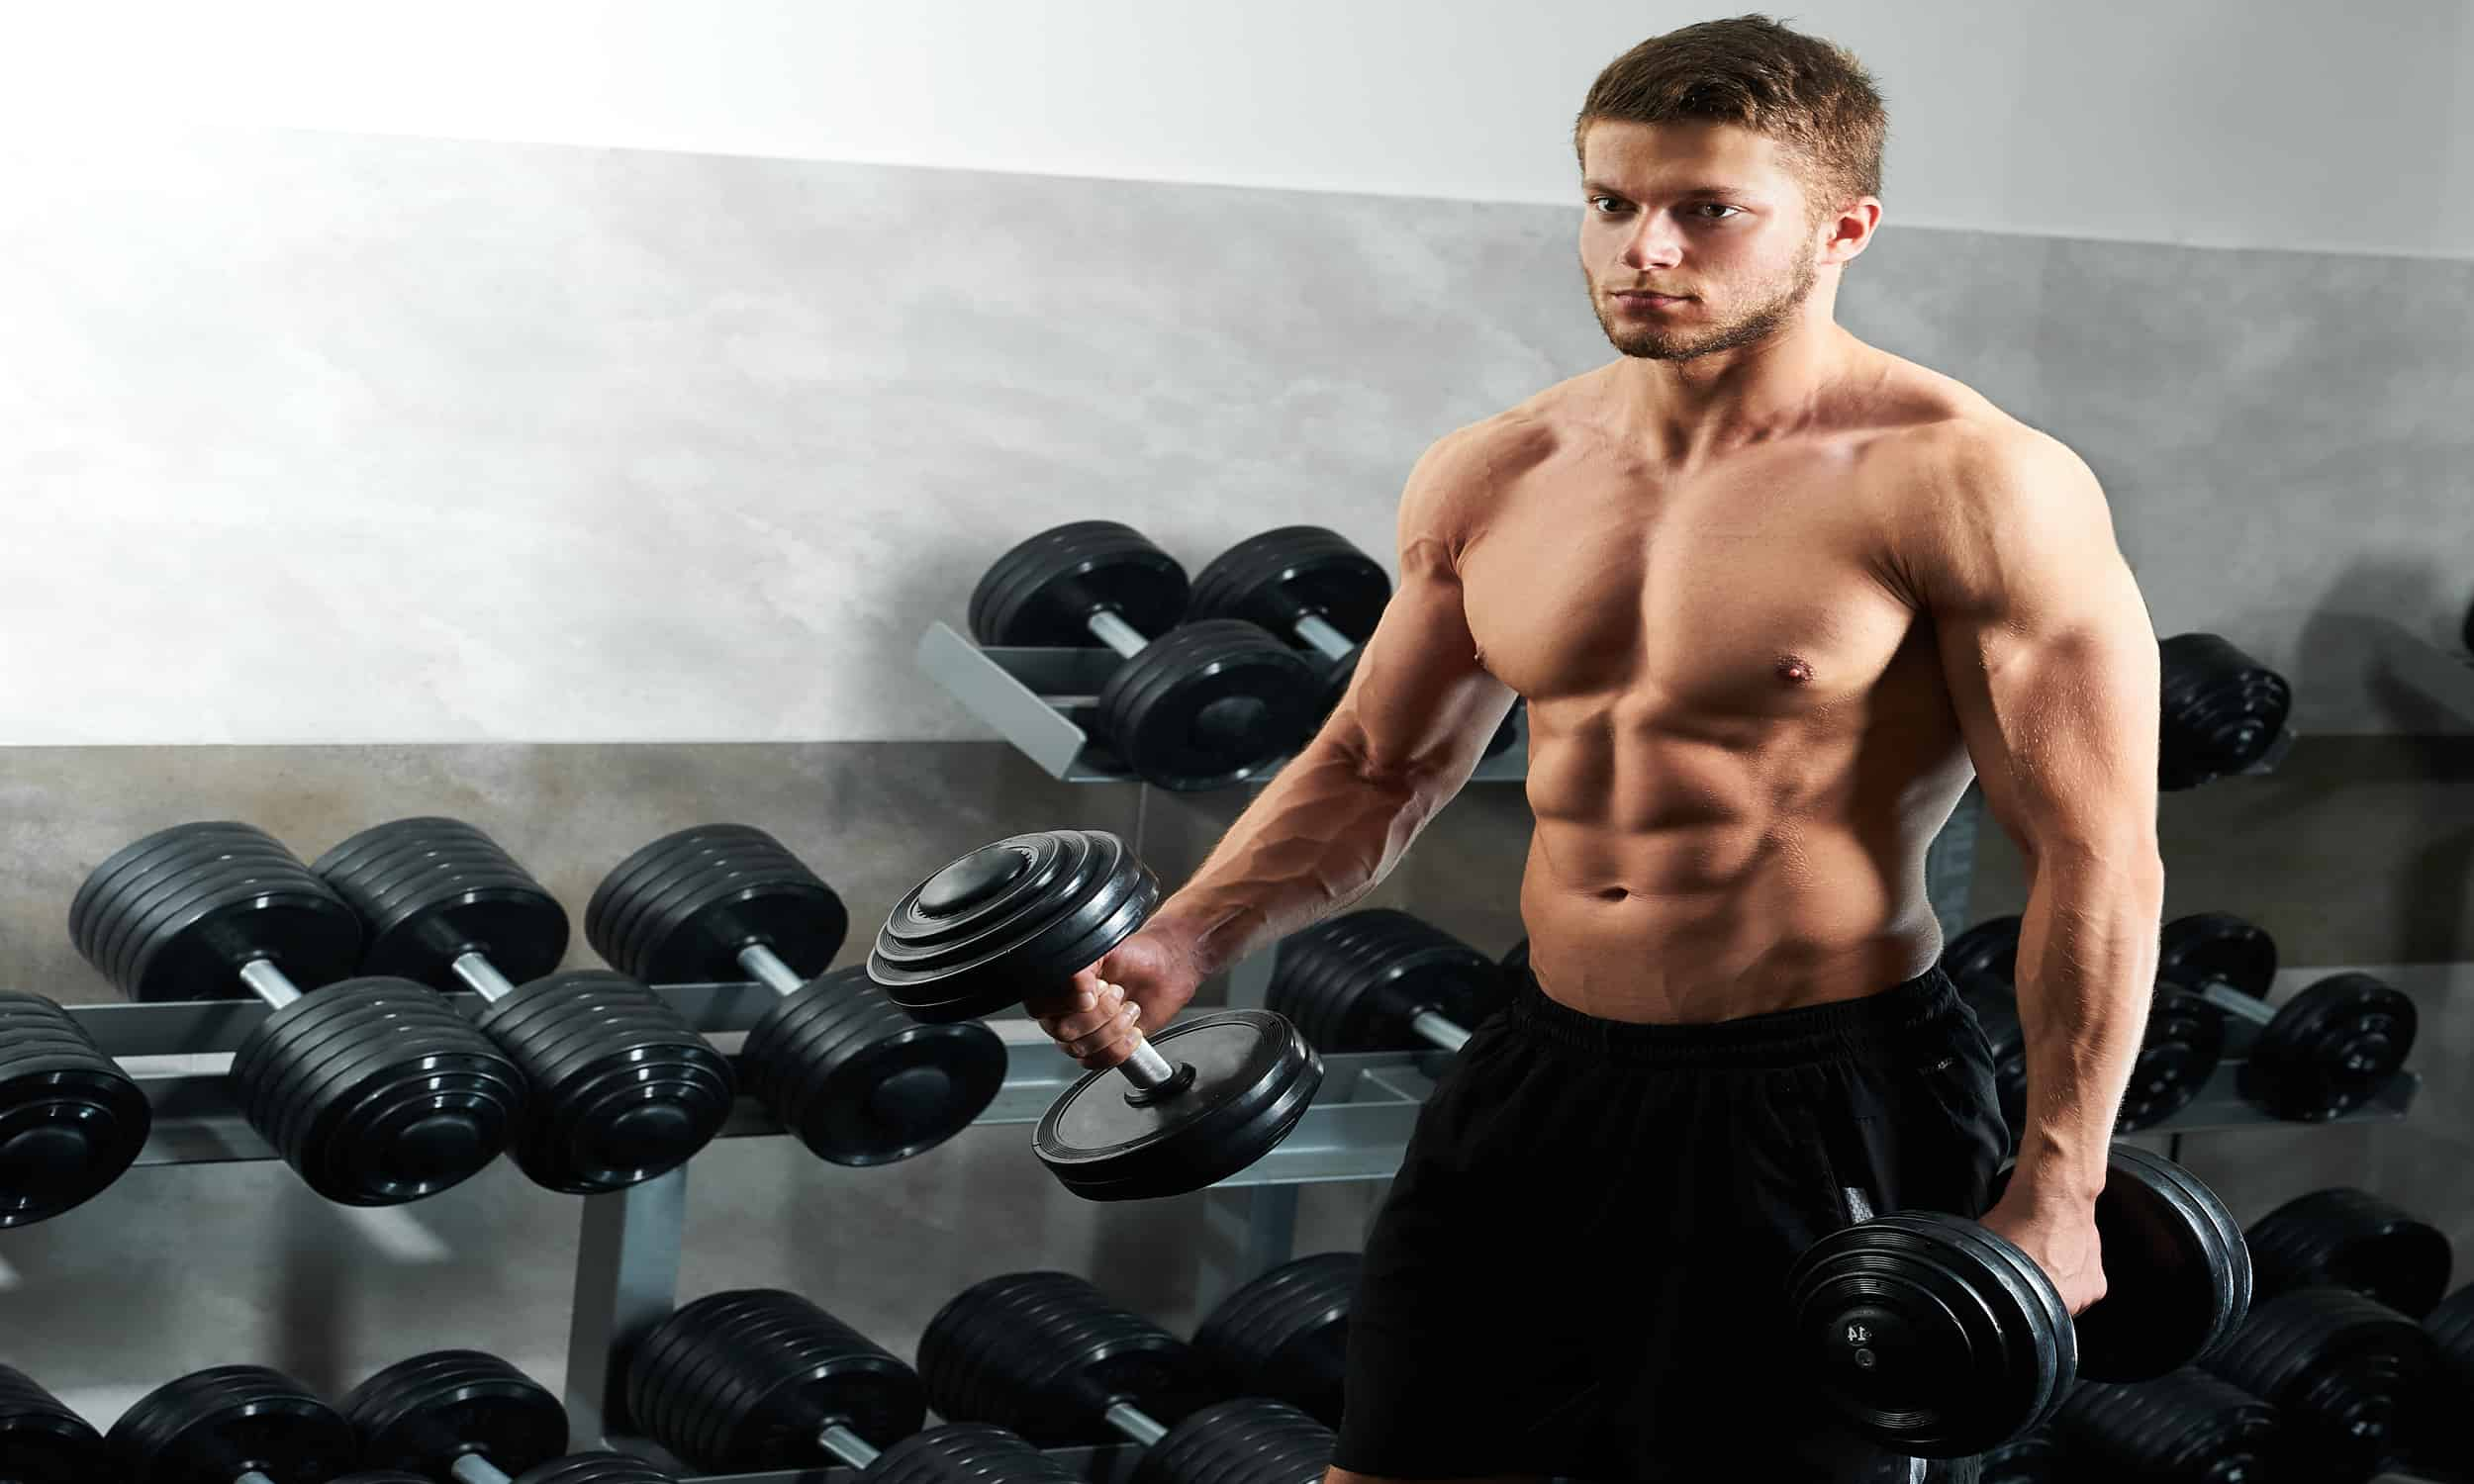 reverse bicep curls: how to do correctly